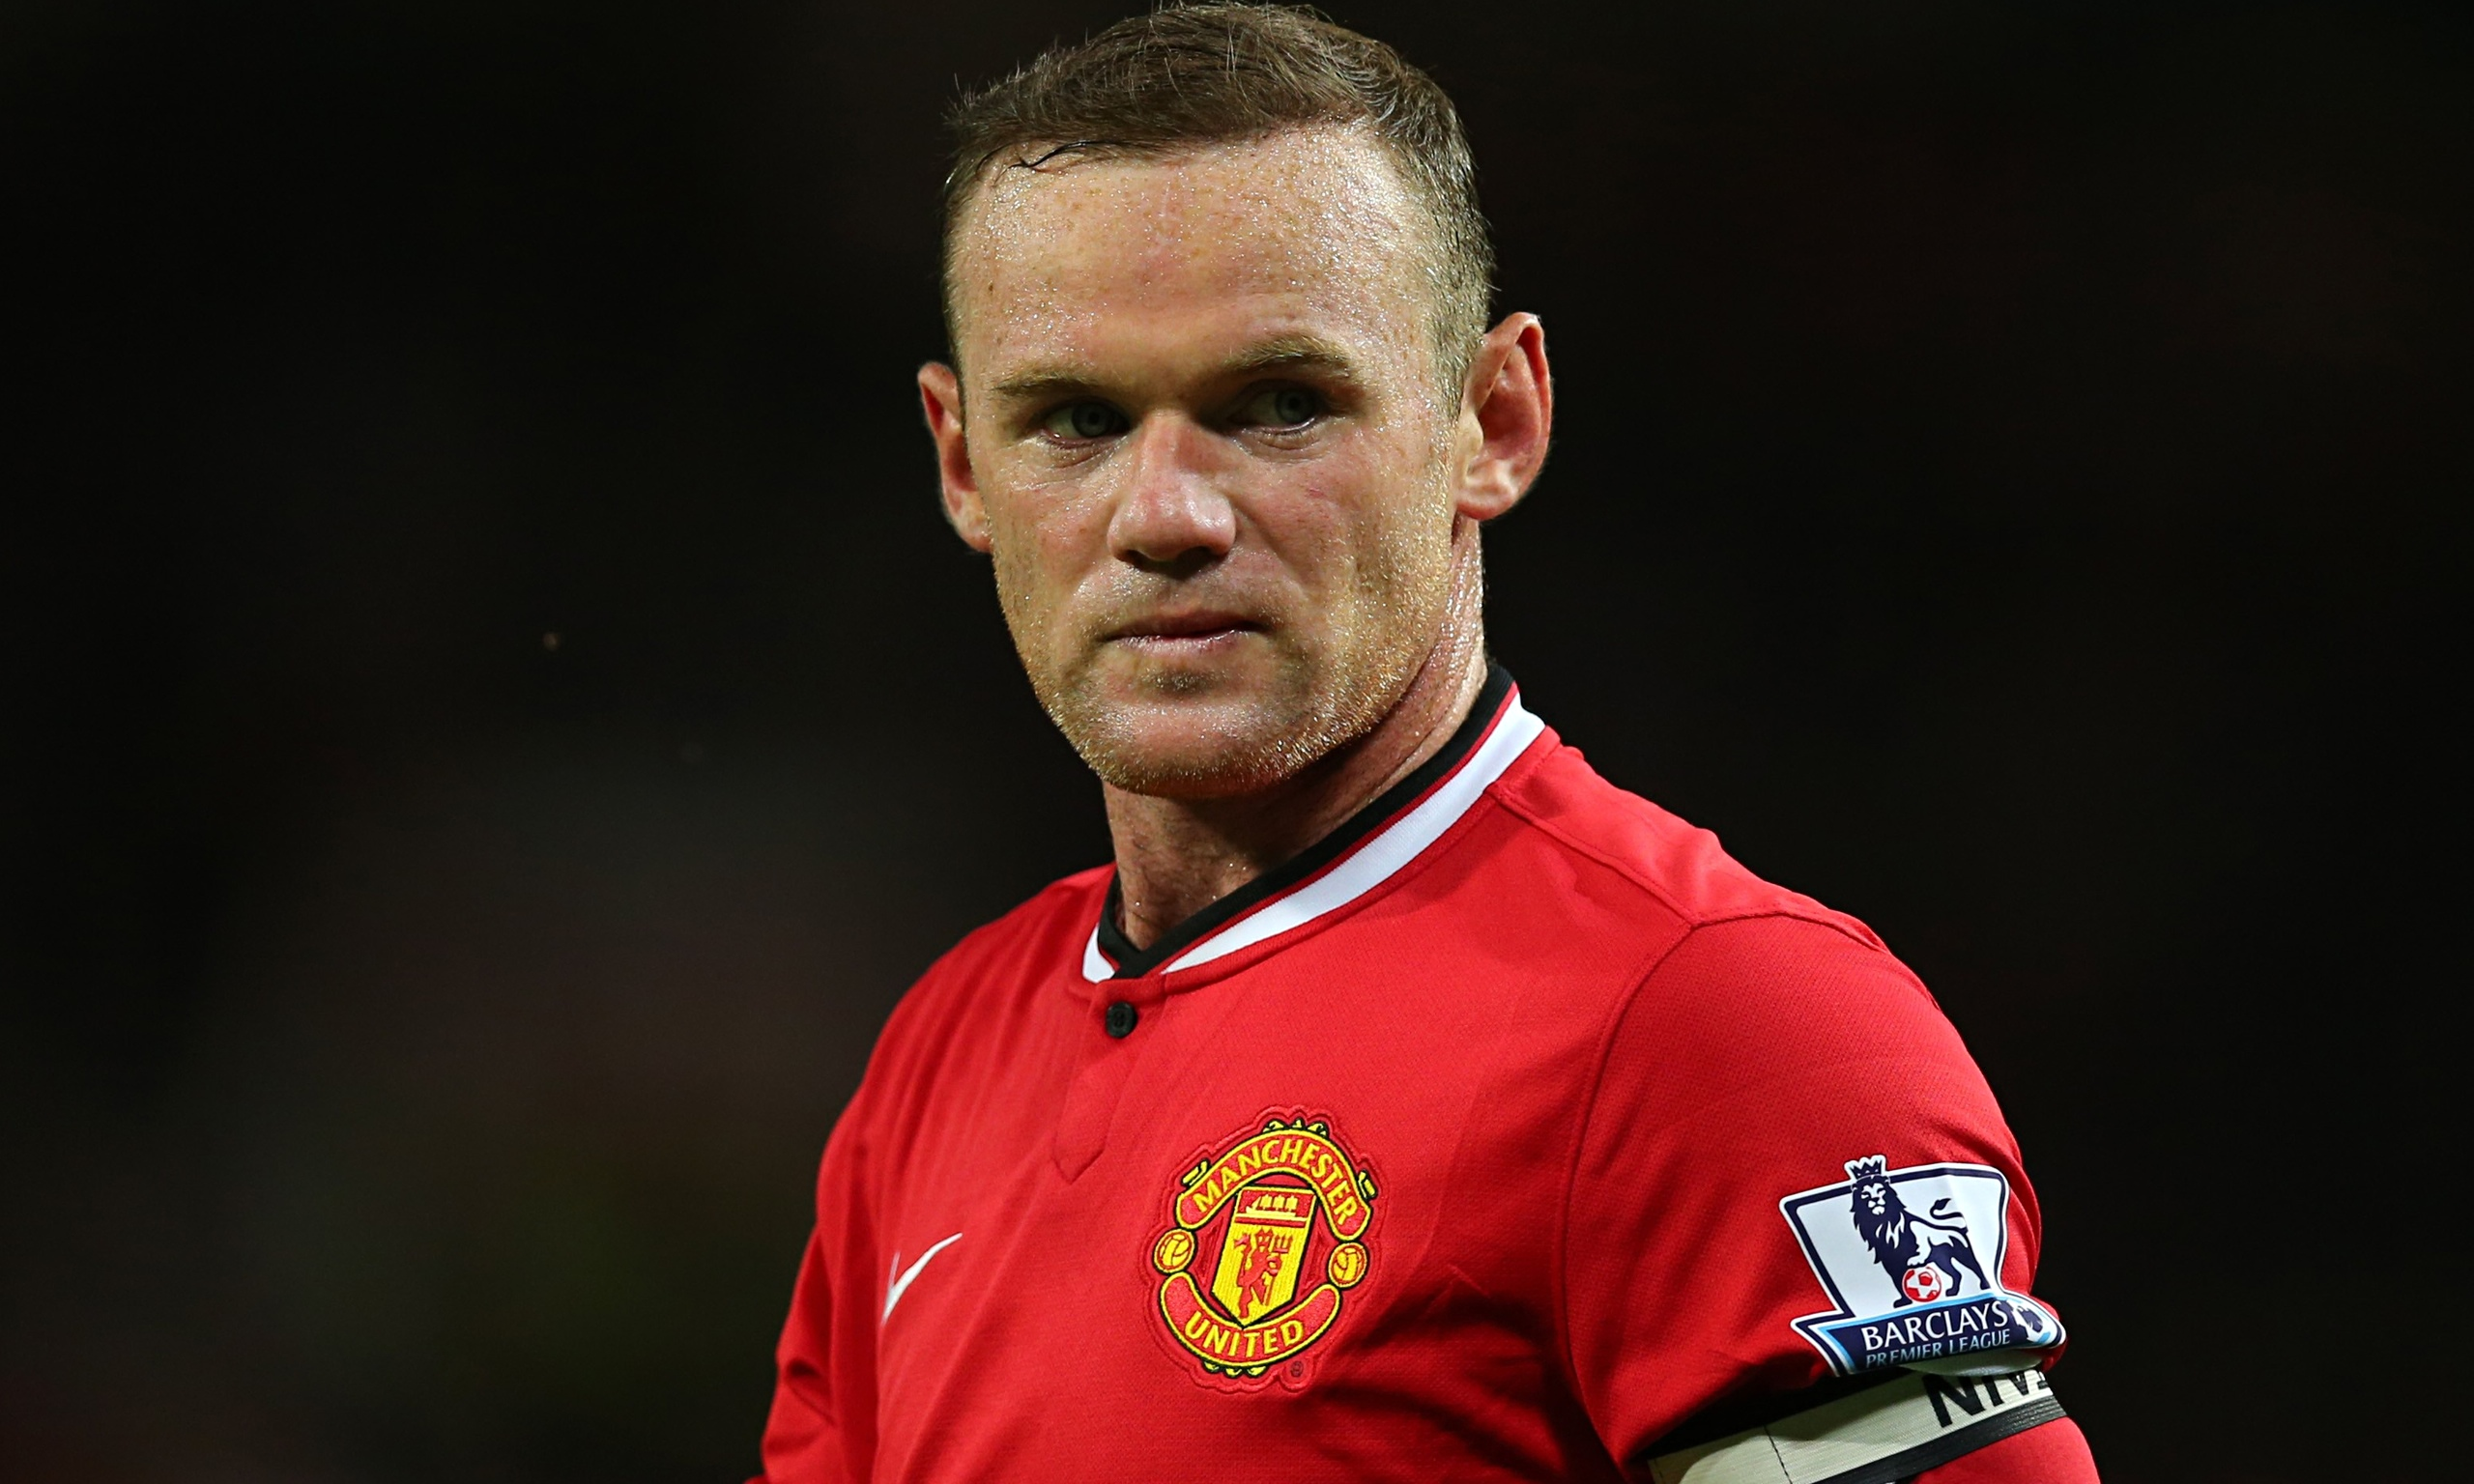 Wayne Rooney earned a 26 million dollar salary, leaving the net worth at 67 million in 2017